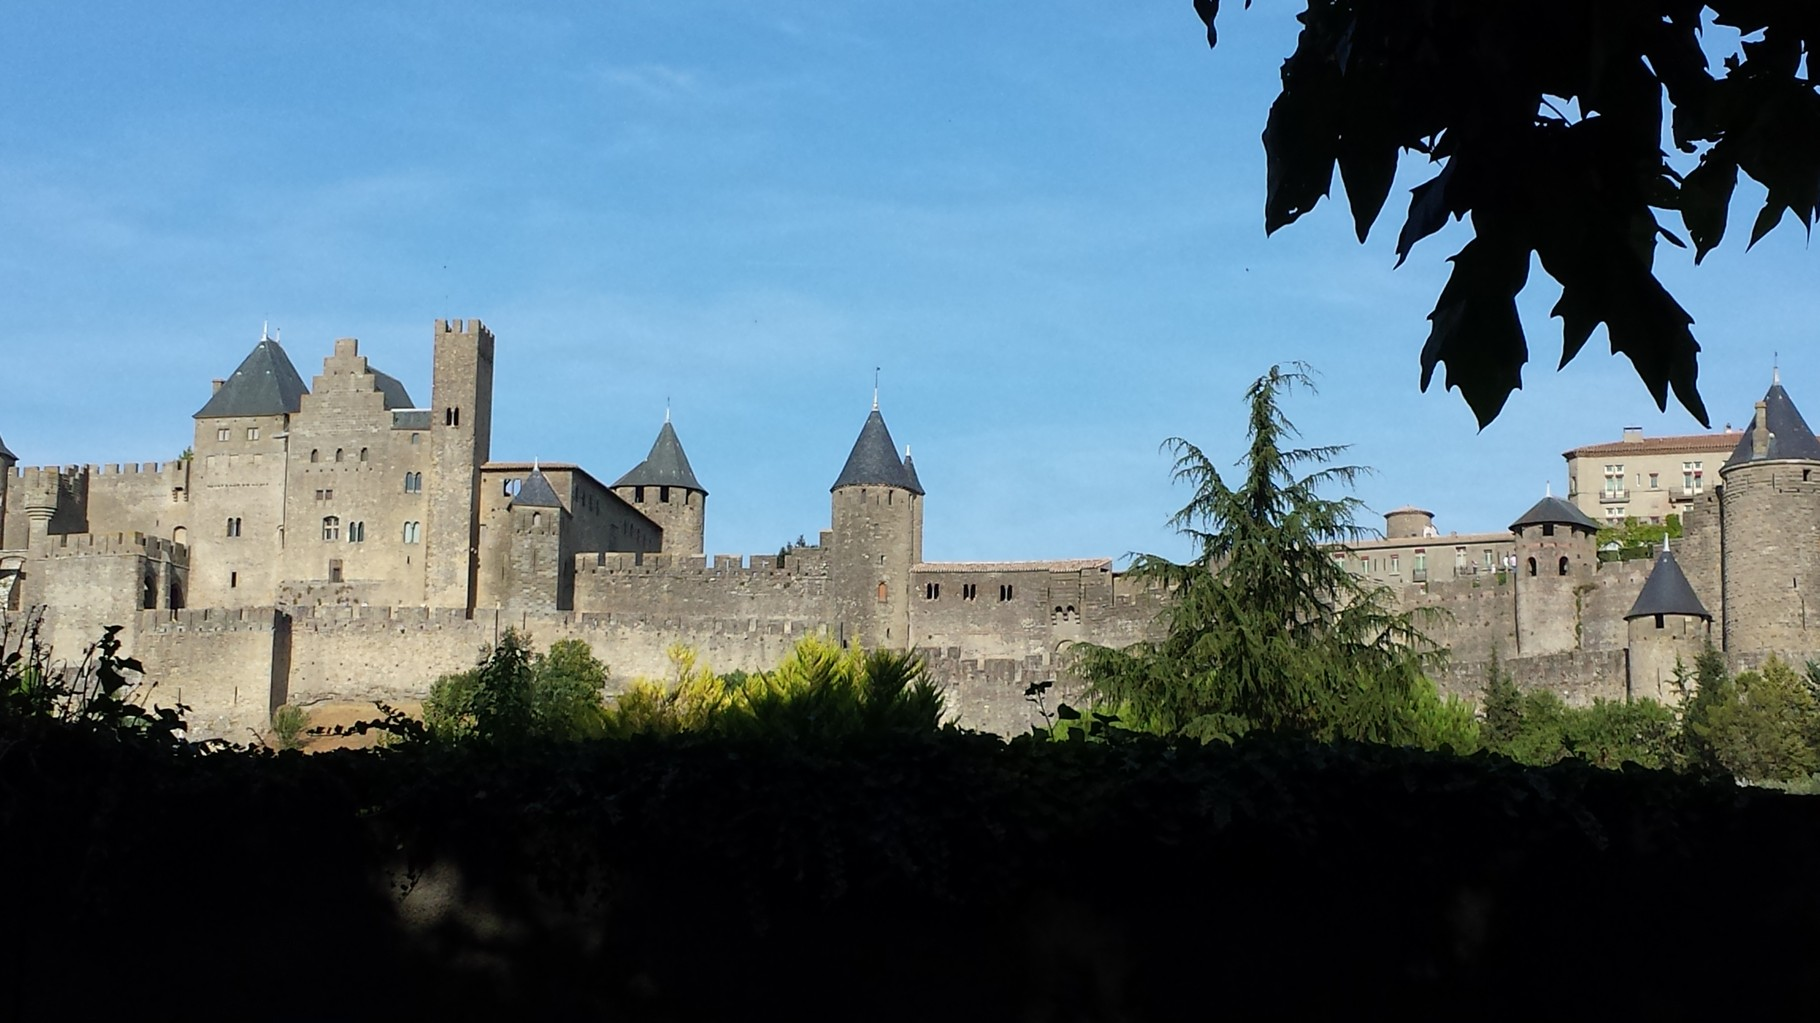 City of Carcassonne